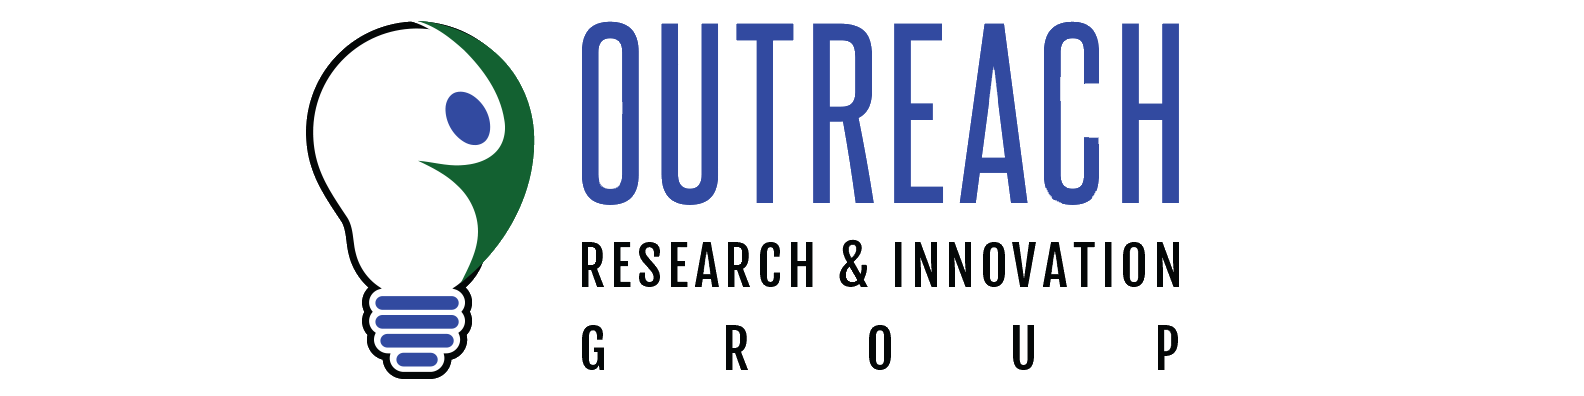 Outreach-Research-Innovation Group